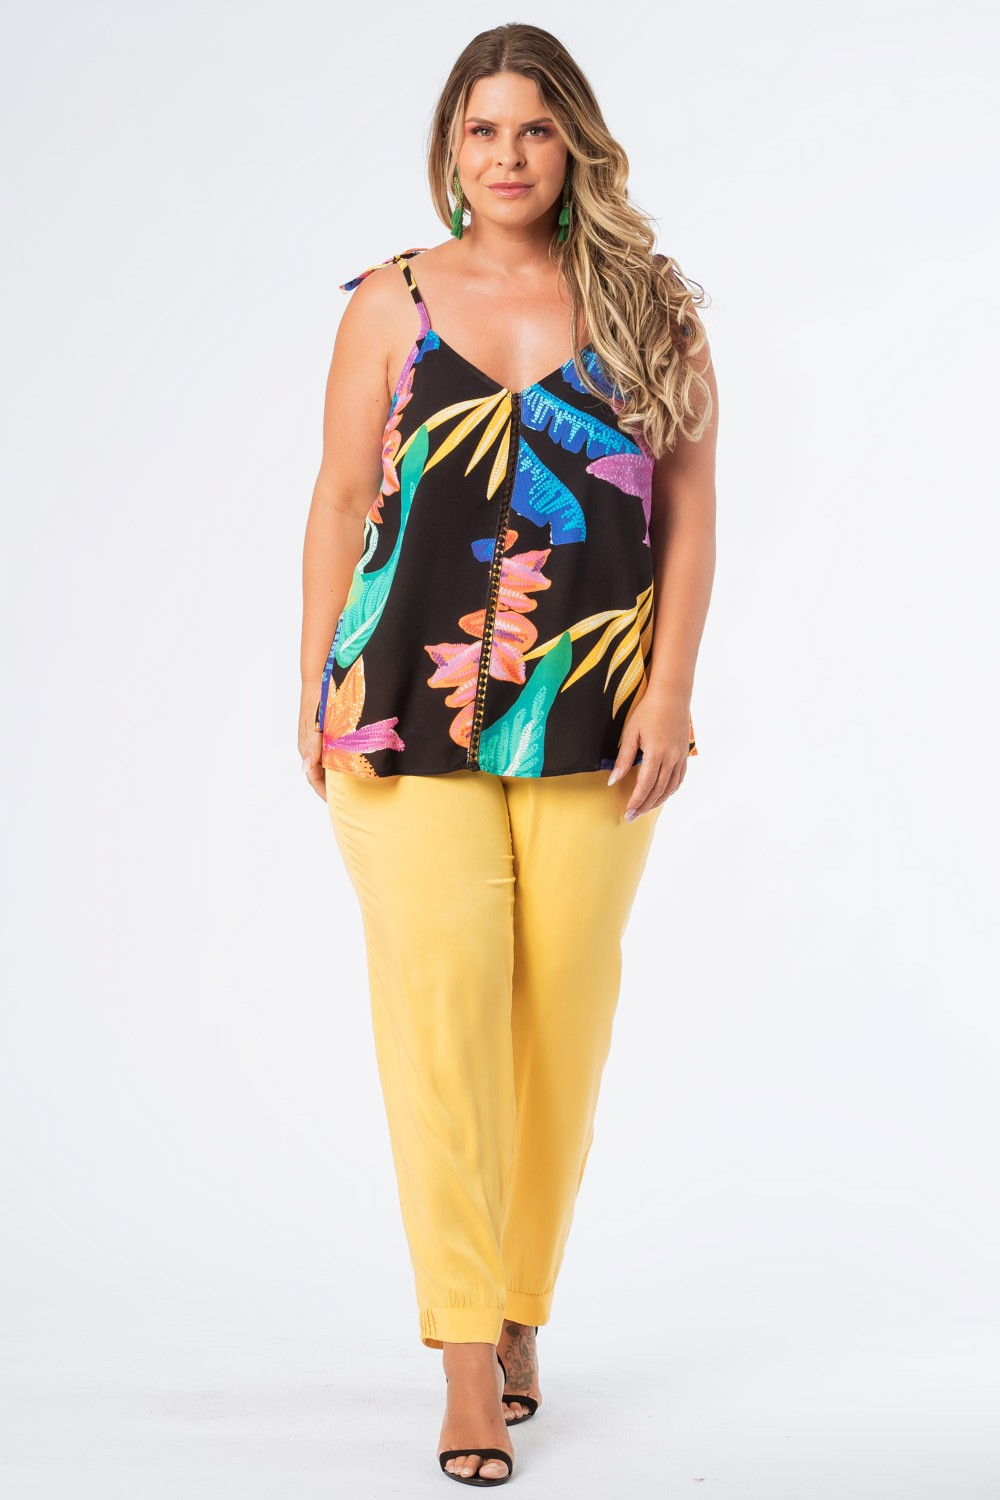 REGATA PLUS SIZE FRUTACOR PRETO